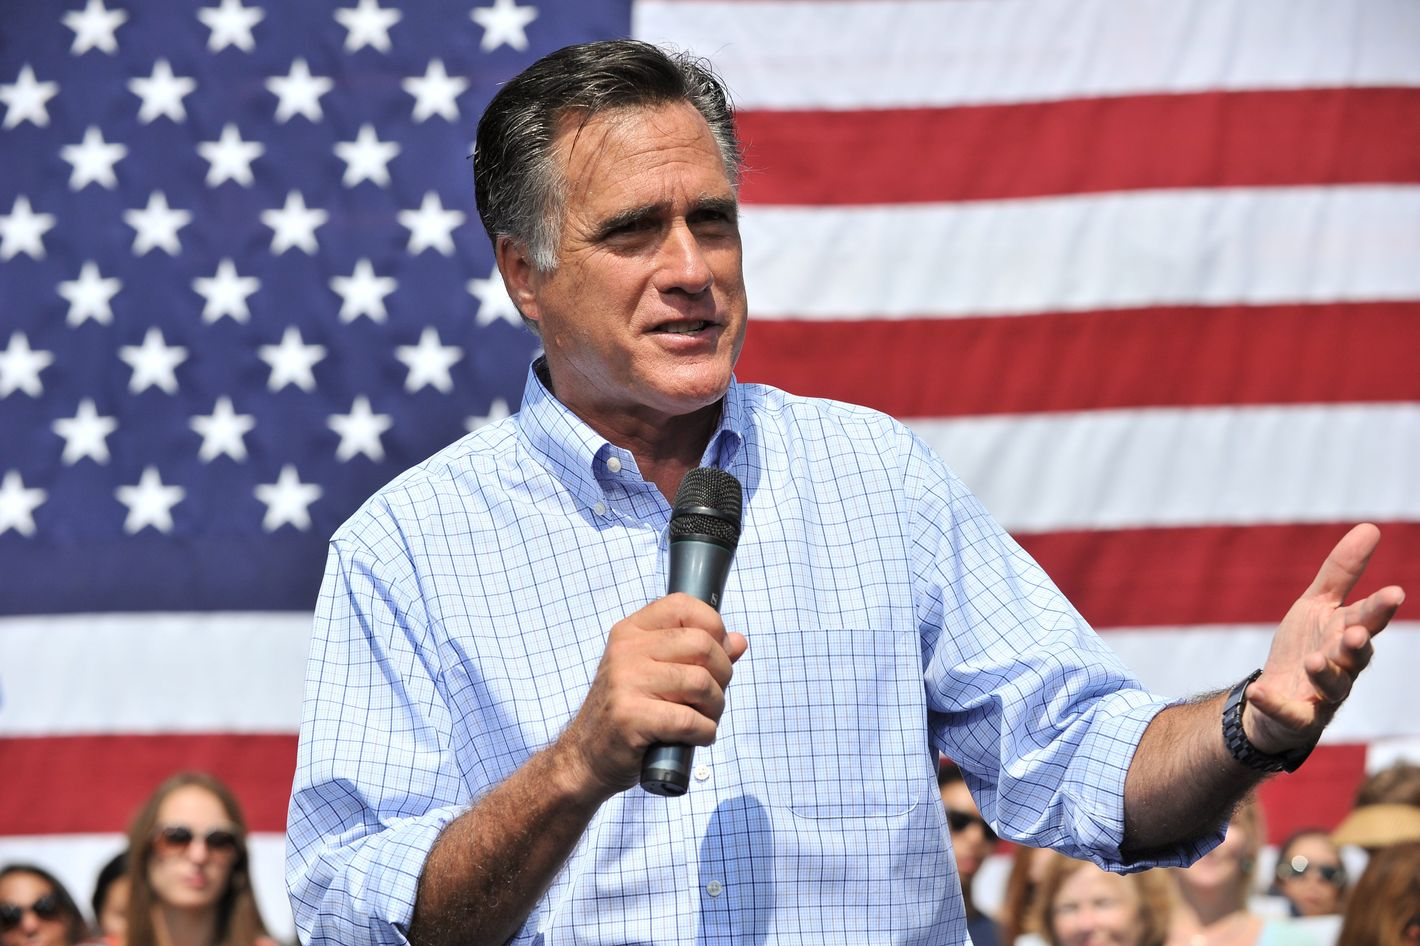 US Republican presidential candidate Mitt Romney speaks at a campaign rally in Fairfax, Virginia, on September 13, 2012.